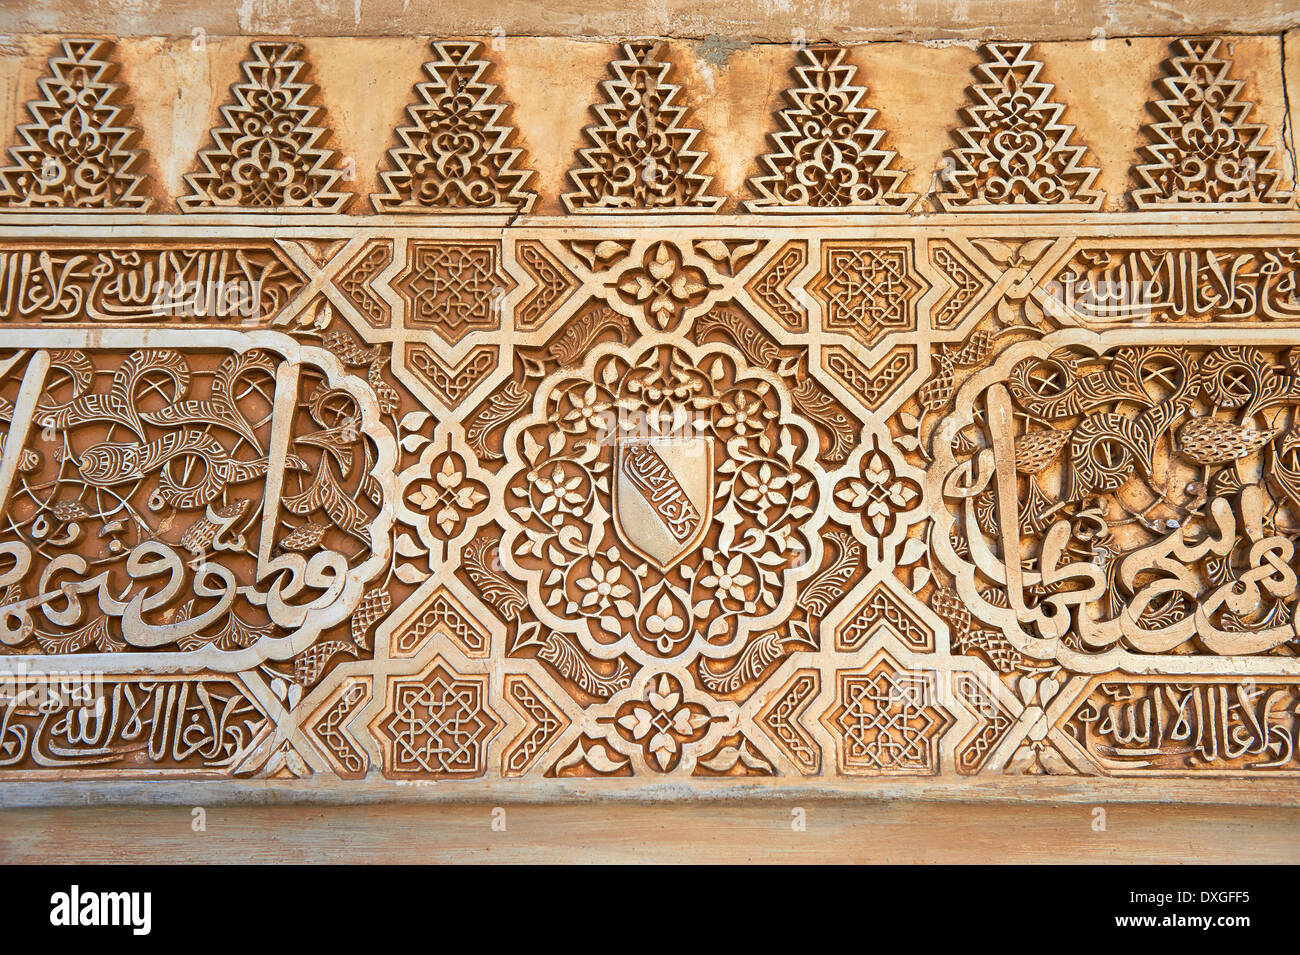 Moorish architectural sculpted plasterwork of the Palacios Nazaries, Alhambra. Granada, Andalusia, Spain. - Stock Image